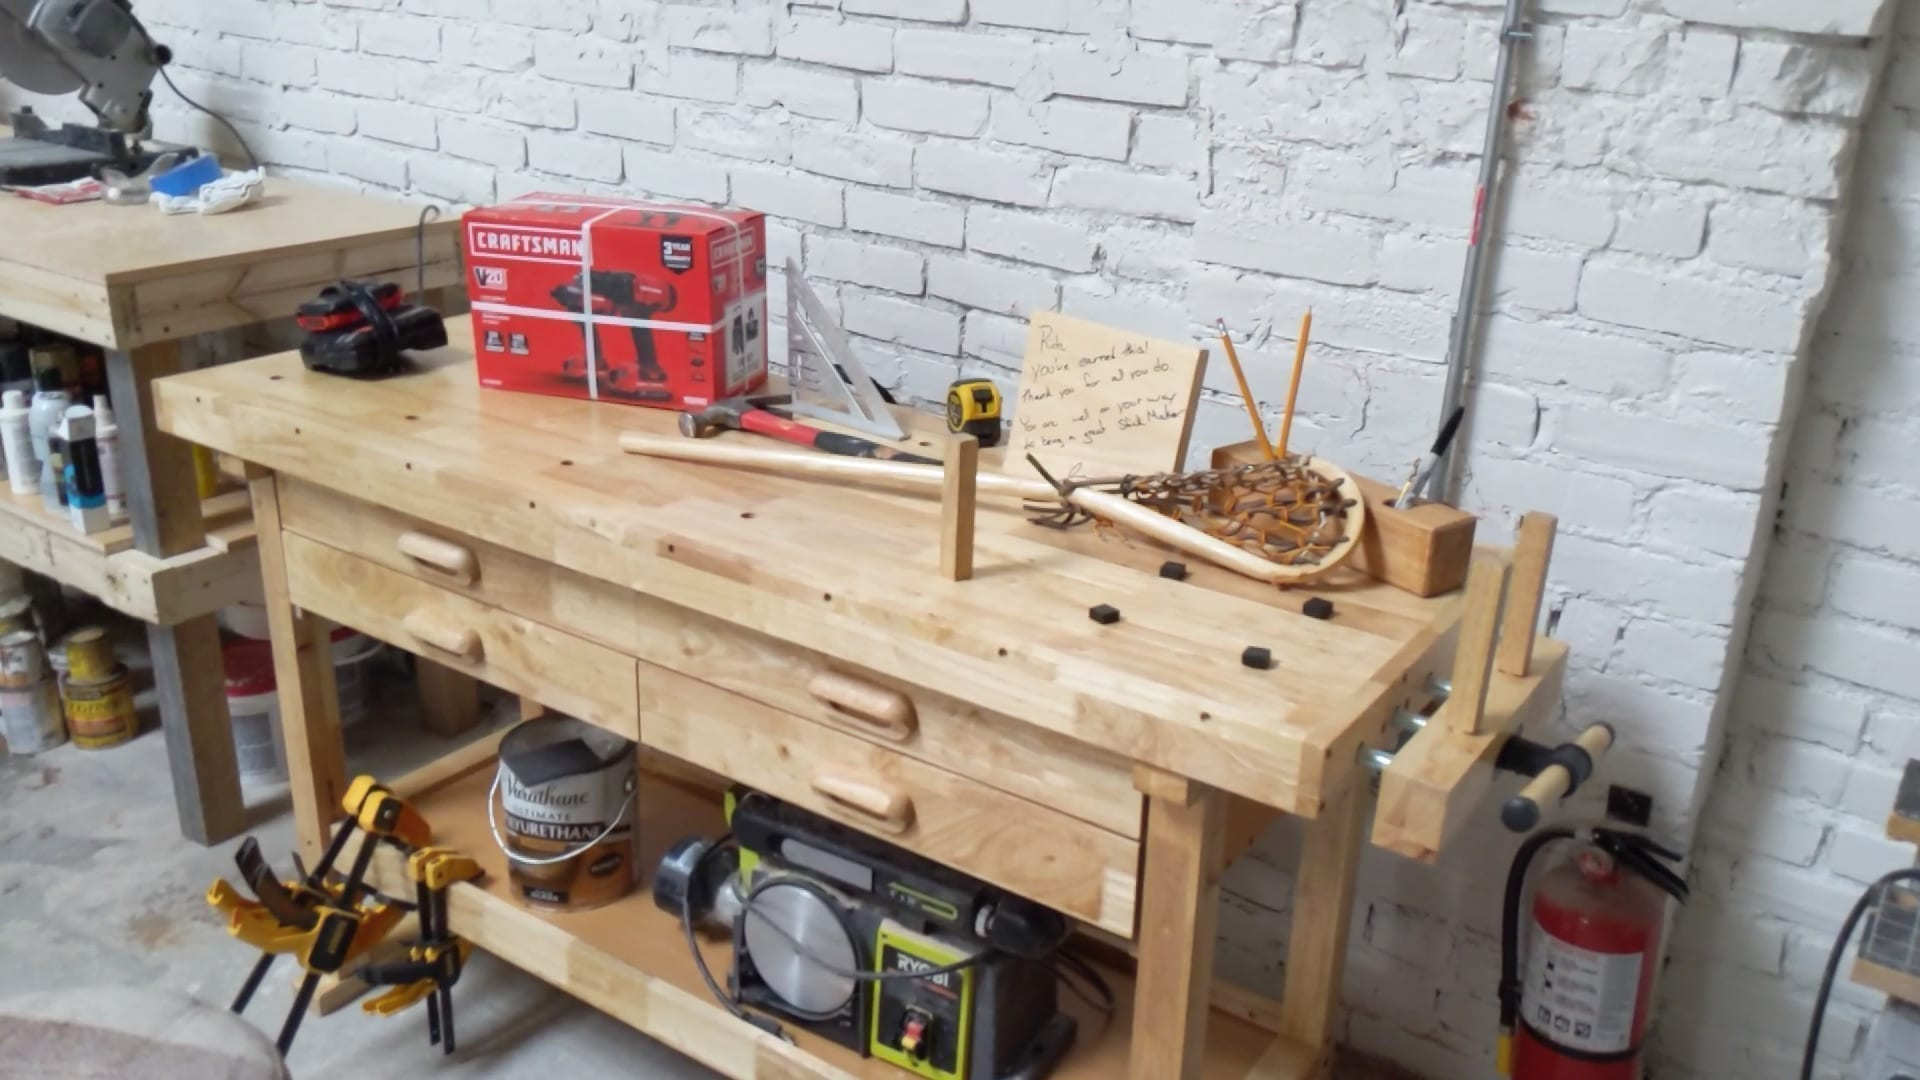 Rich Snow Get a New Work Bench for a Big Project